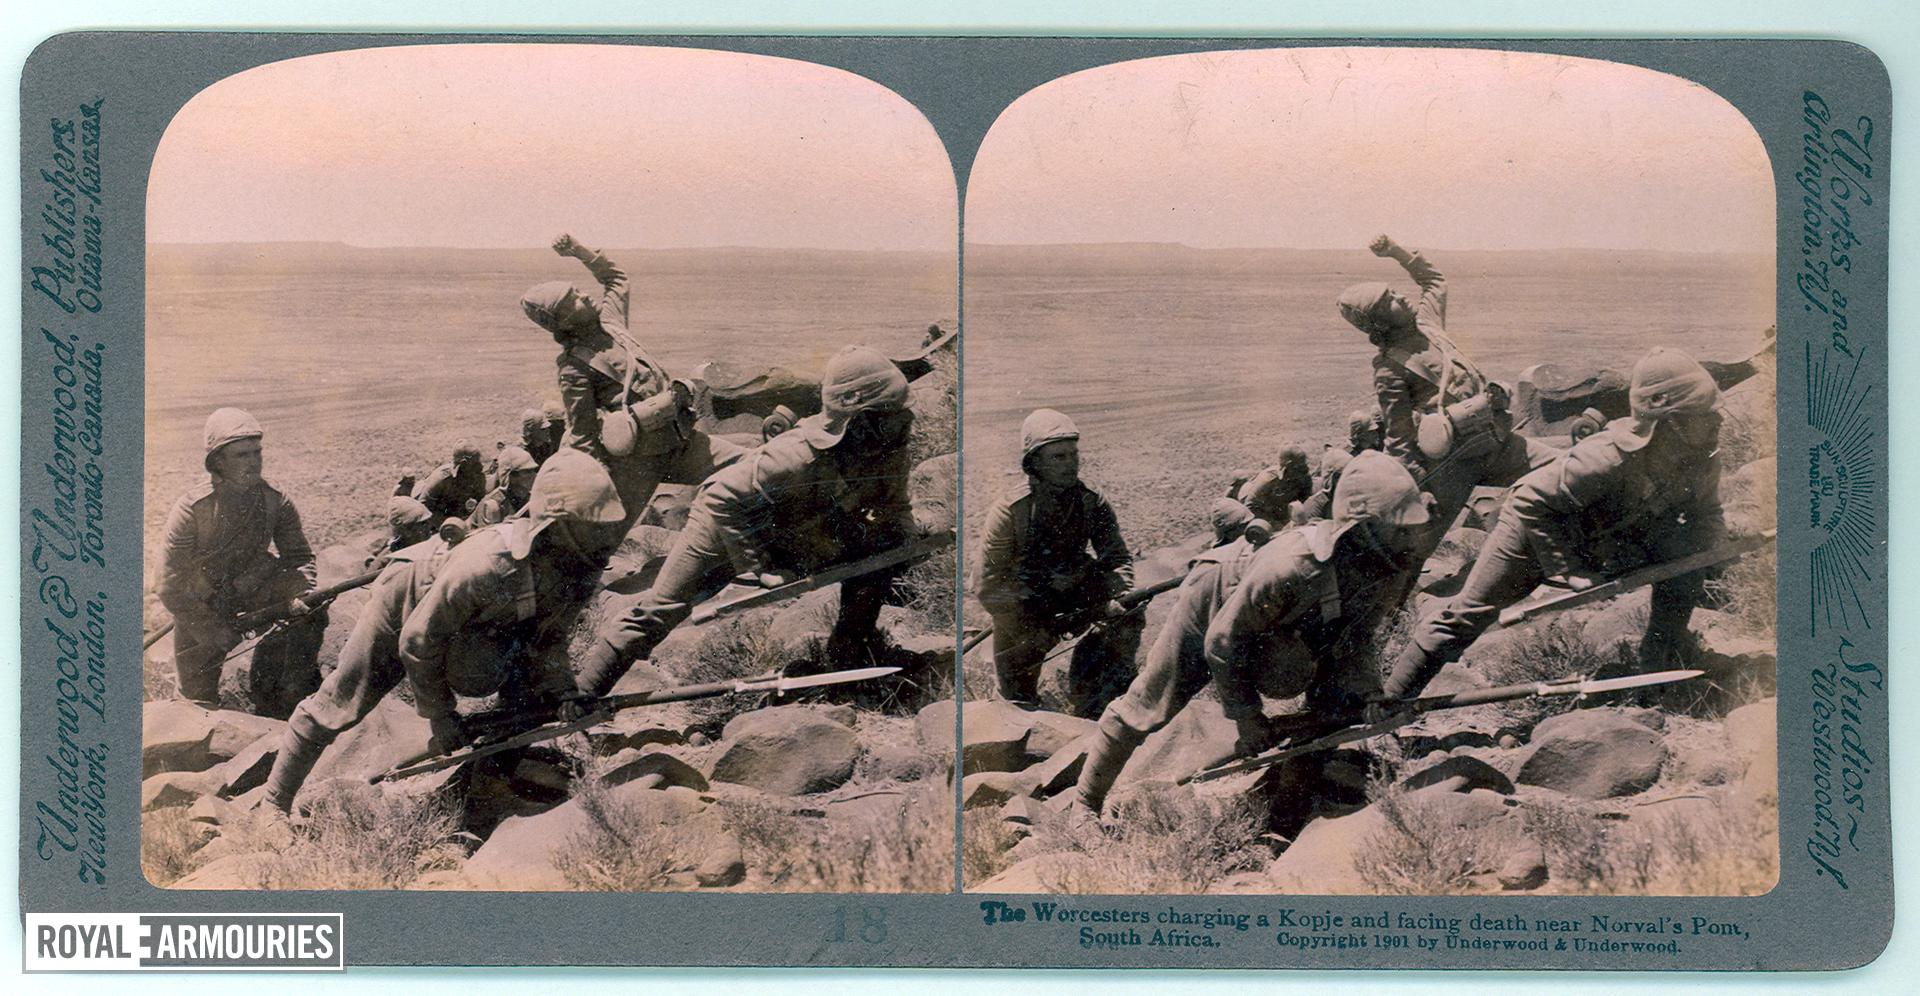 Stereoscopic photograph entitled '18, The Worcesters charging a Kopje and facing death near Norval's Pont, South Africa', Underwood & Underwood Publishers, 1901.  Armed with Mark I, Magazine Lee-Enfield rifles and Pattern 1888 bayonets, The Worcestershire Regiment charge a Kopje (hill) near Norvalspont, during the Colesberg Operations of the Second Boer War, about1900.